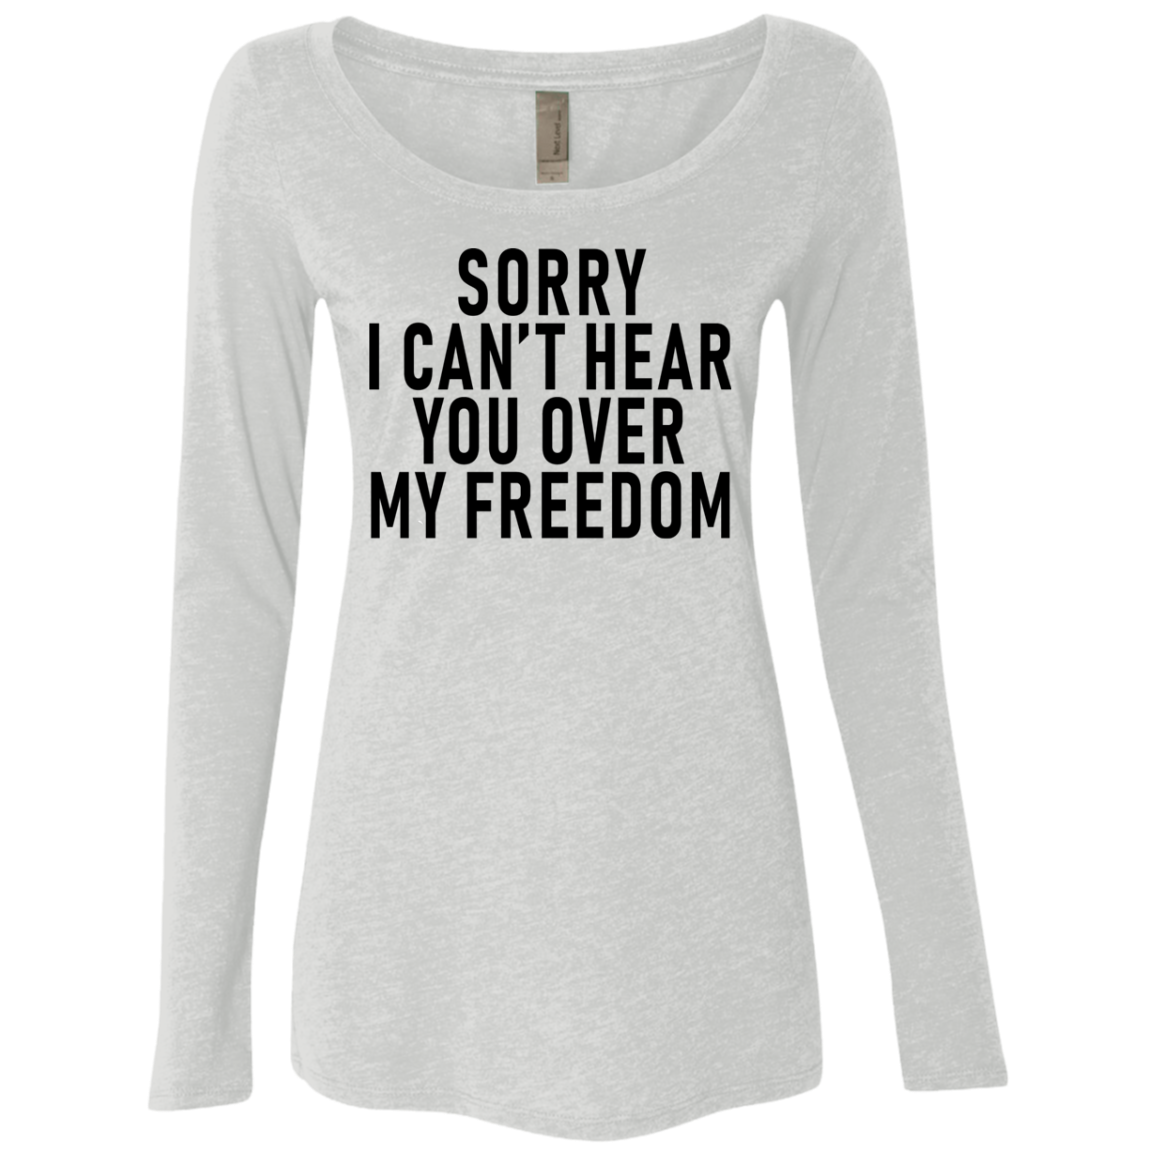 Sorry I Can't Hear You Over My Freedom Women's Long Sleeve Tee